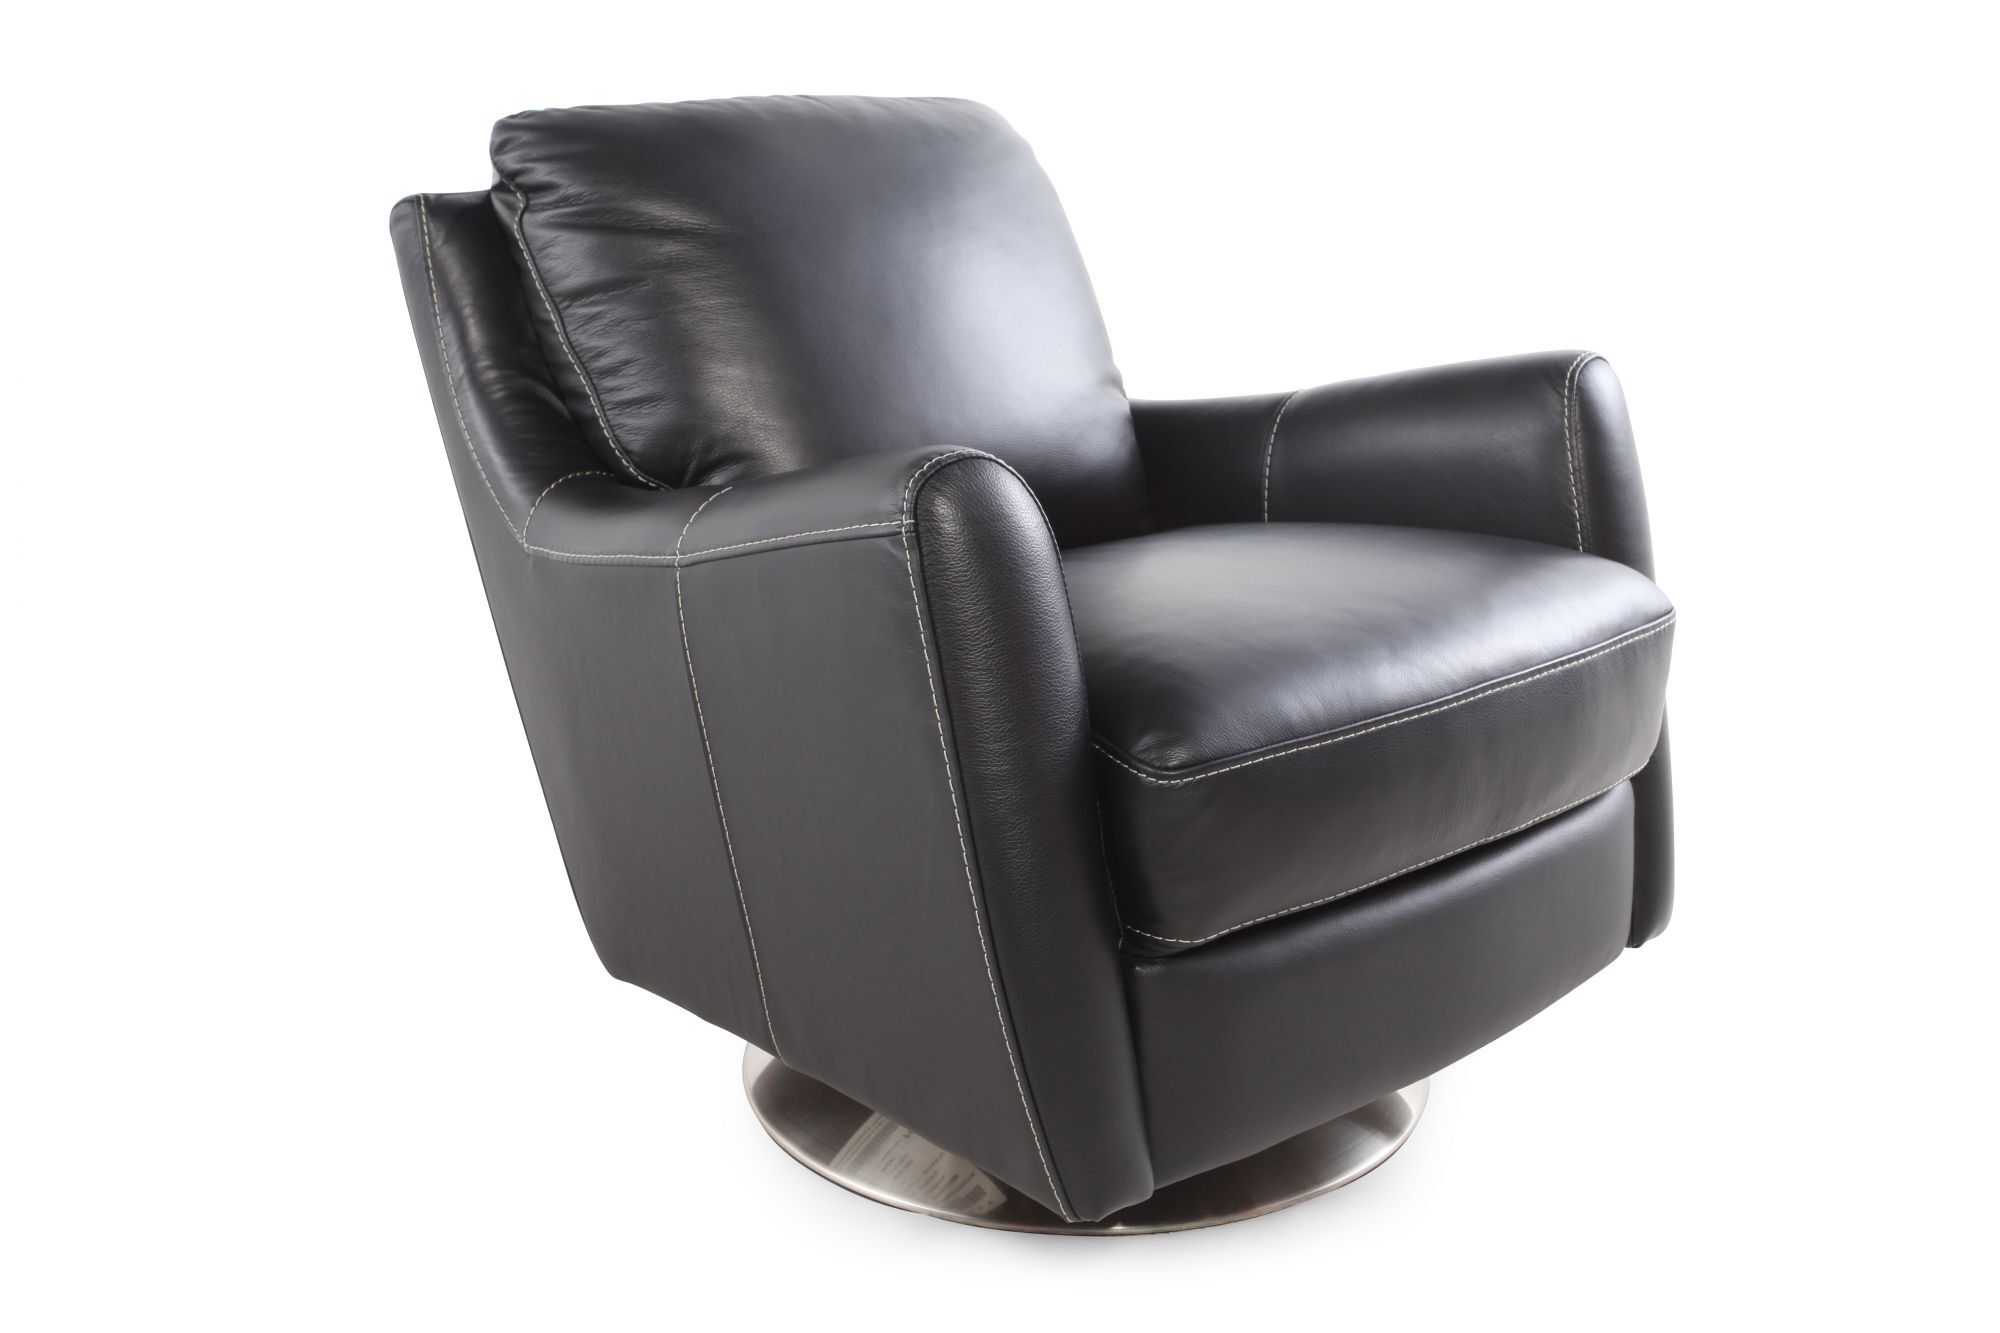 Black Swivel Chair Track Arm Swivel Chair In Black Mathis Brothers Furniture